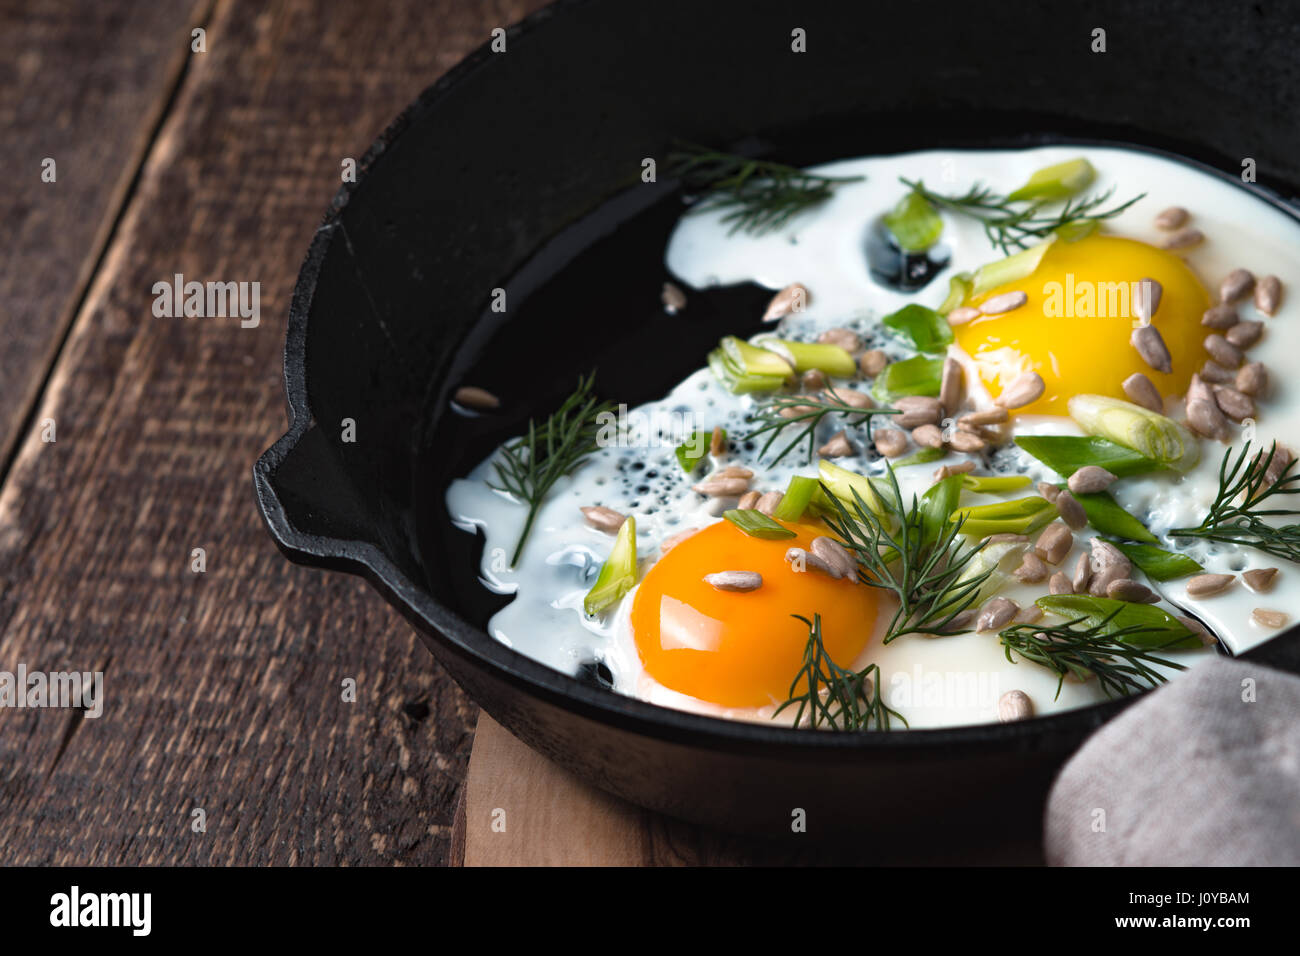 Scrambled eggs  on the wooden table horizontal - Stock Image